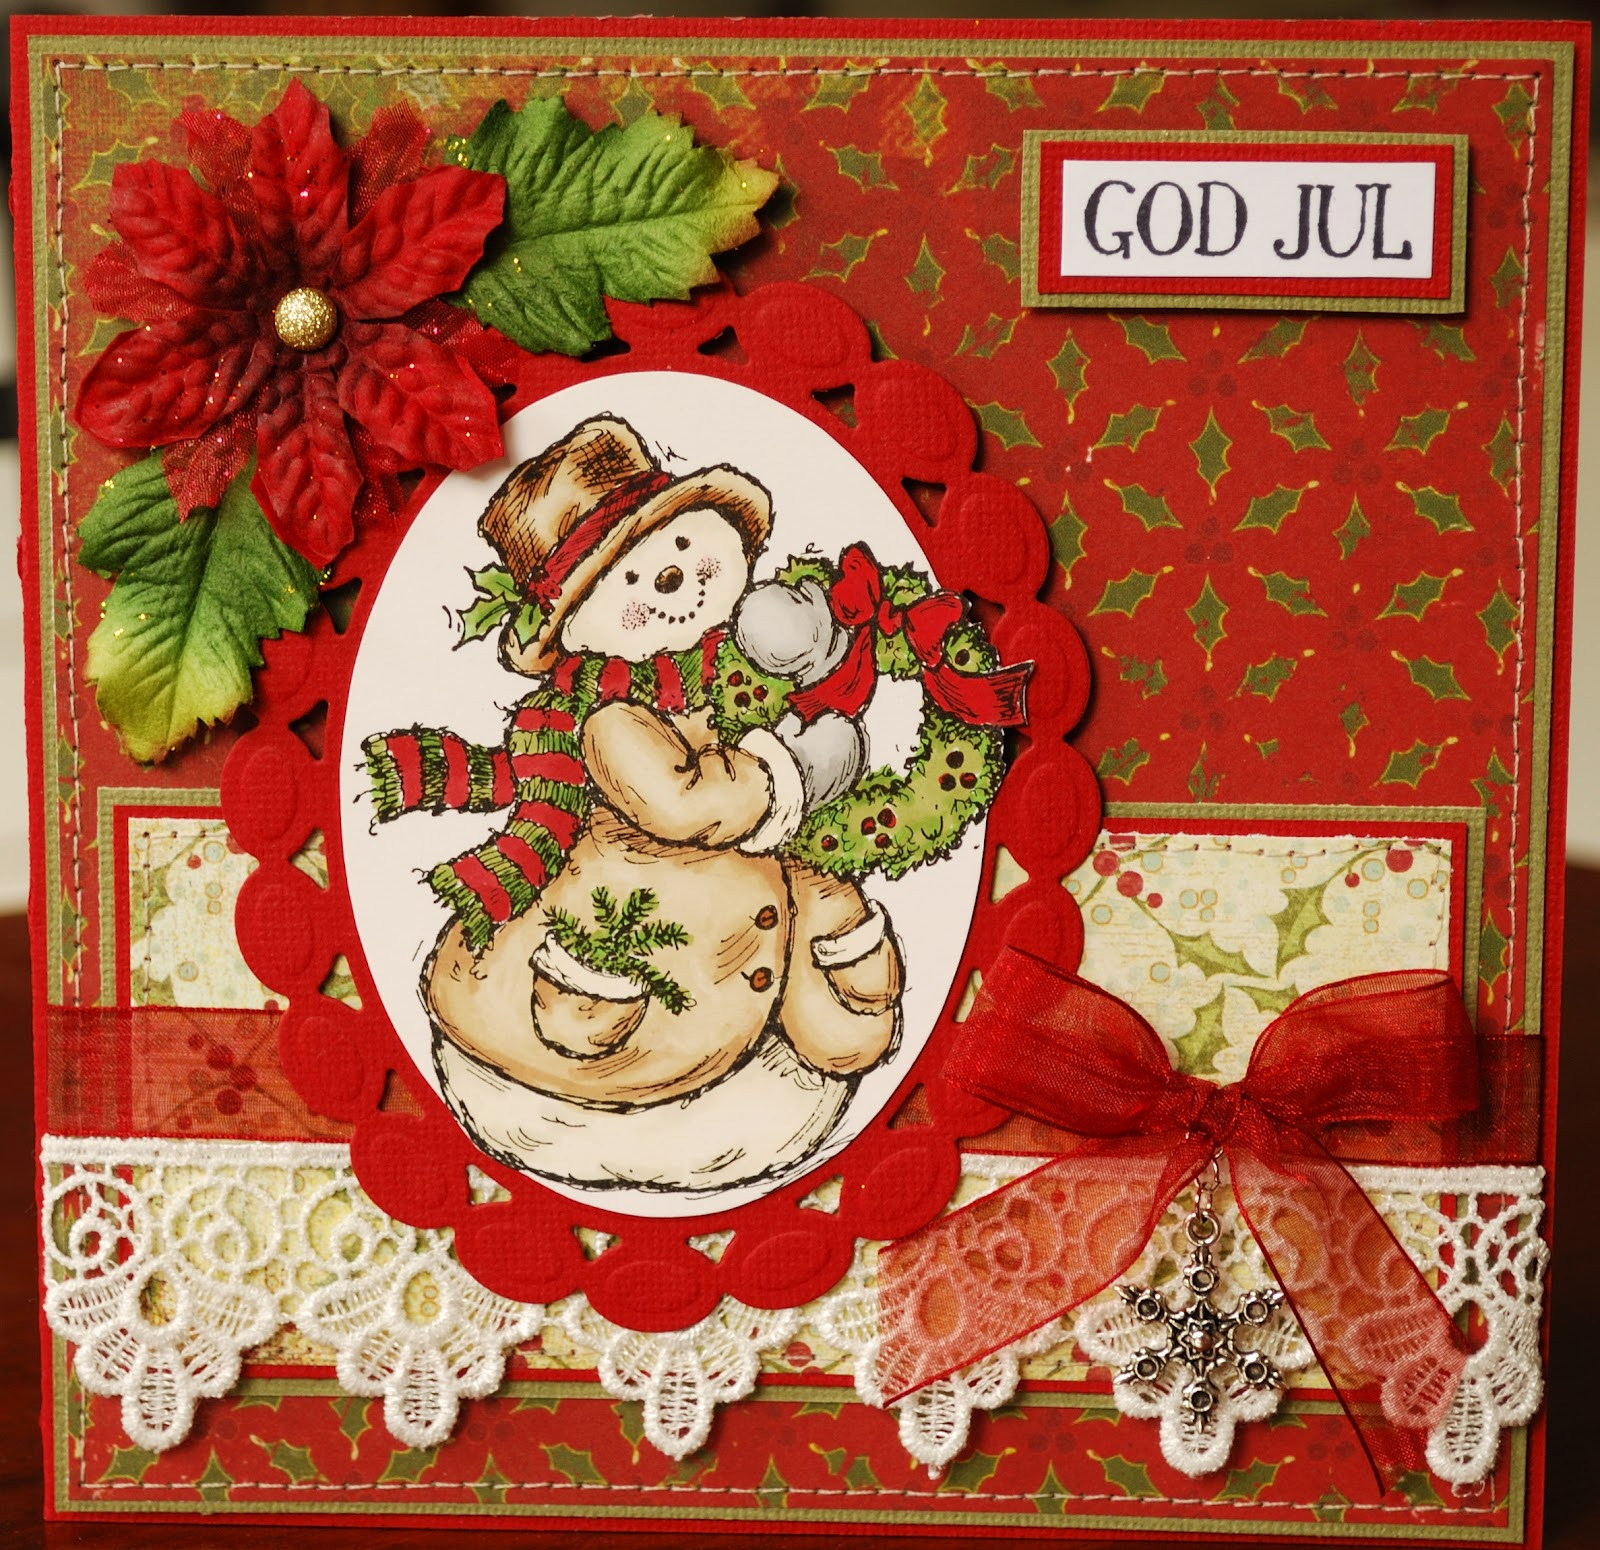 Where To Buy Christmas Decorations Year Round: Christmas Crafts All Year 'Round: July Challenge